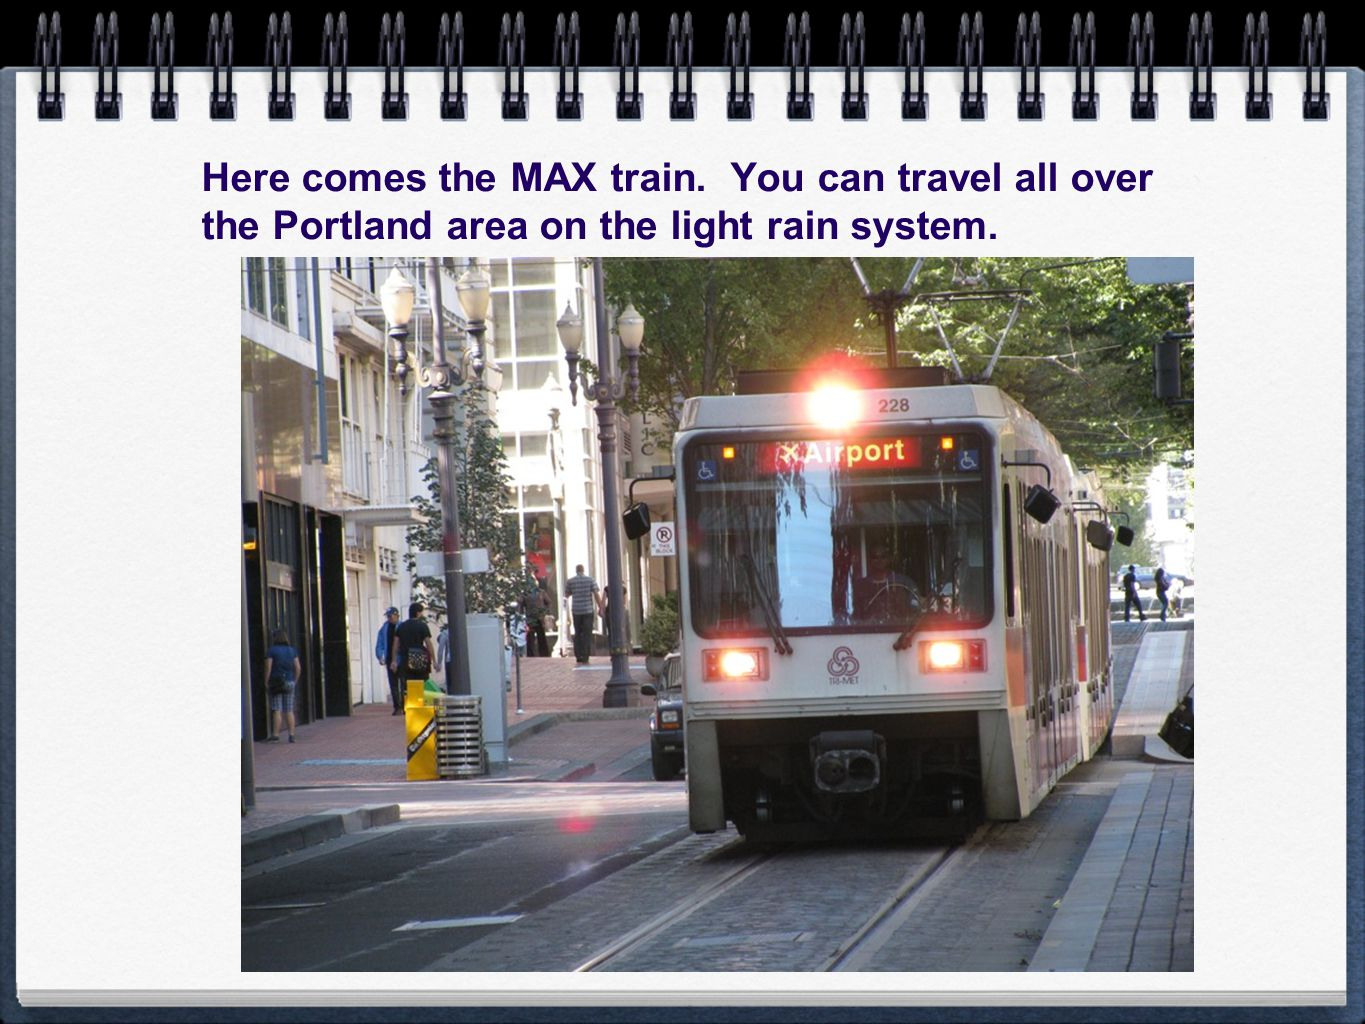 Here comes the MAX train. You can travel all over the Portland area on the light rain system.